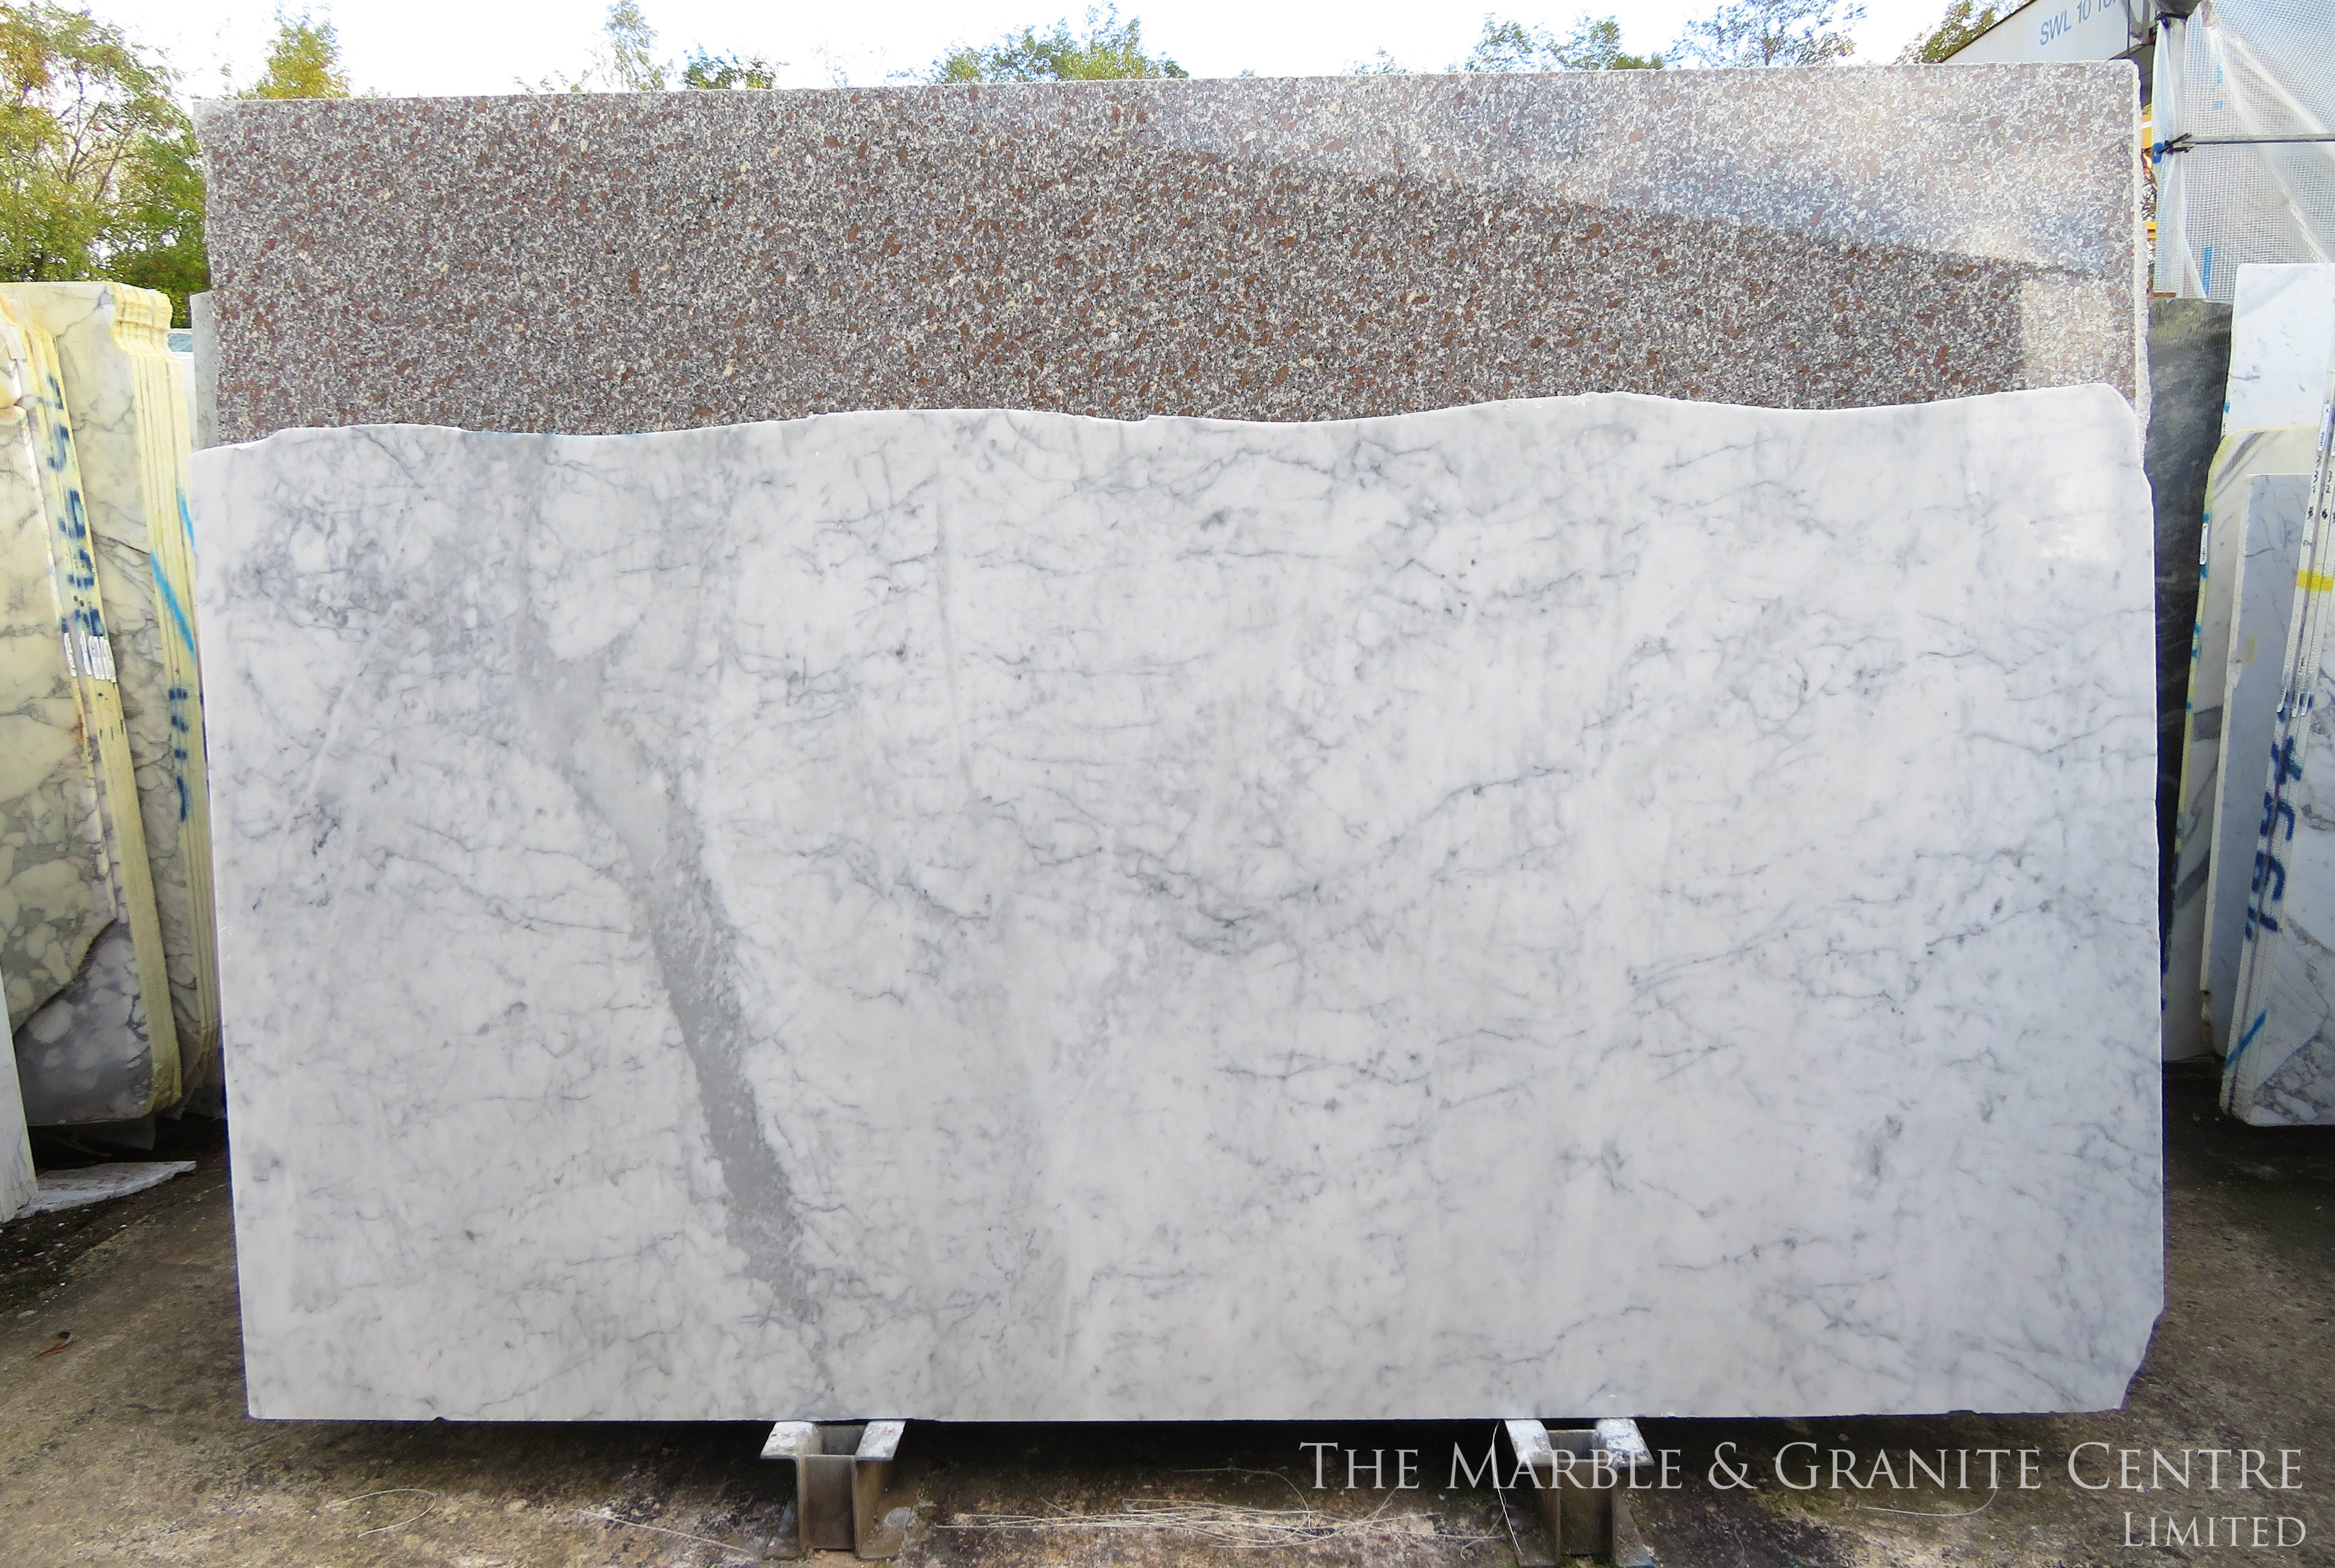 Marble White Carrara Gioia Polished 30 mm [11805]